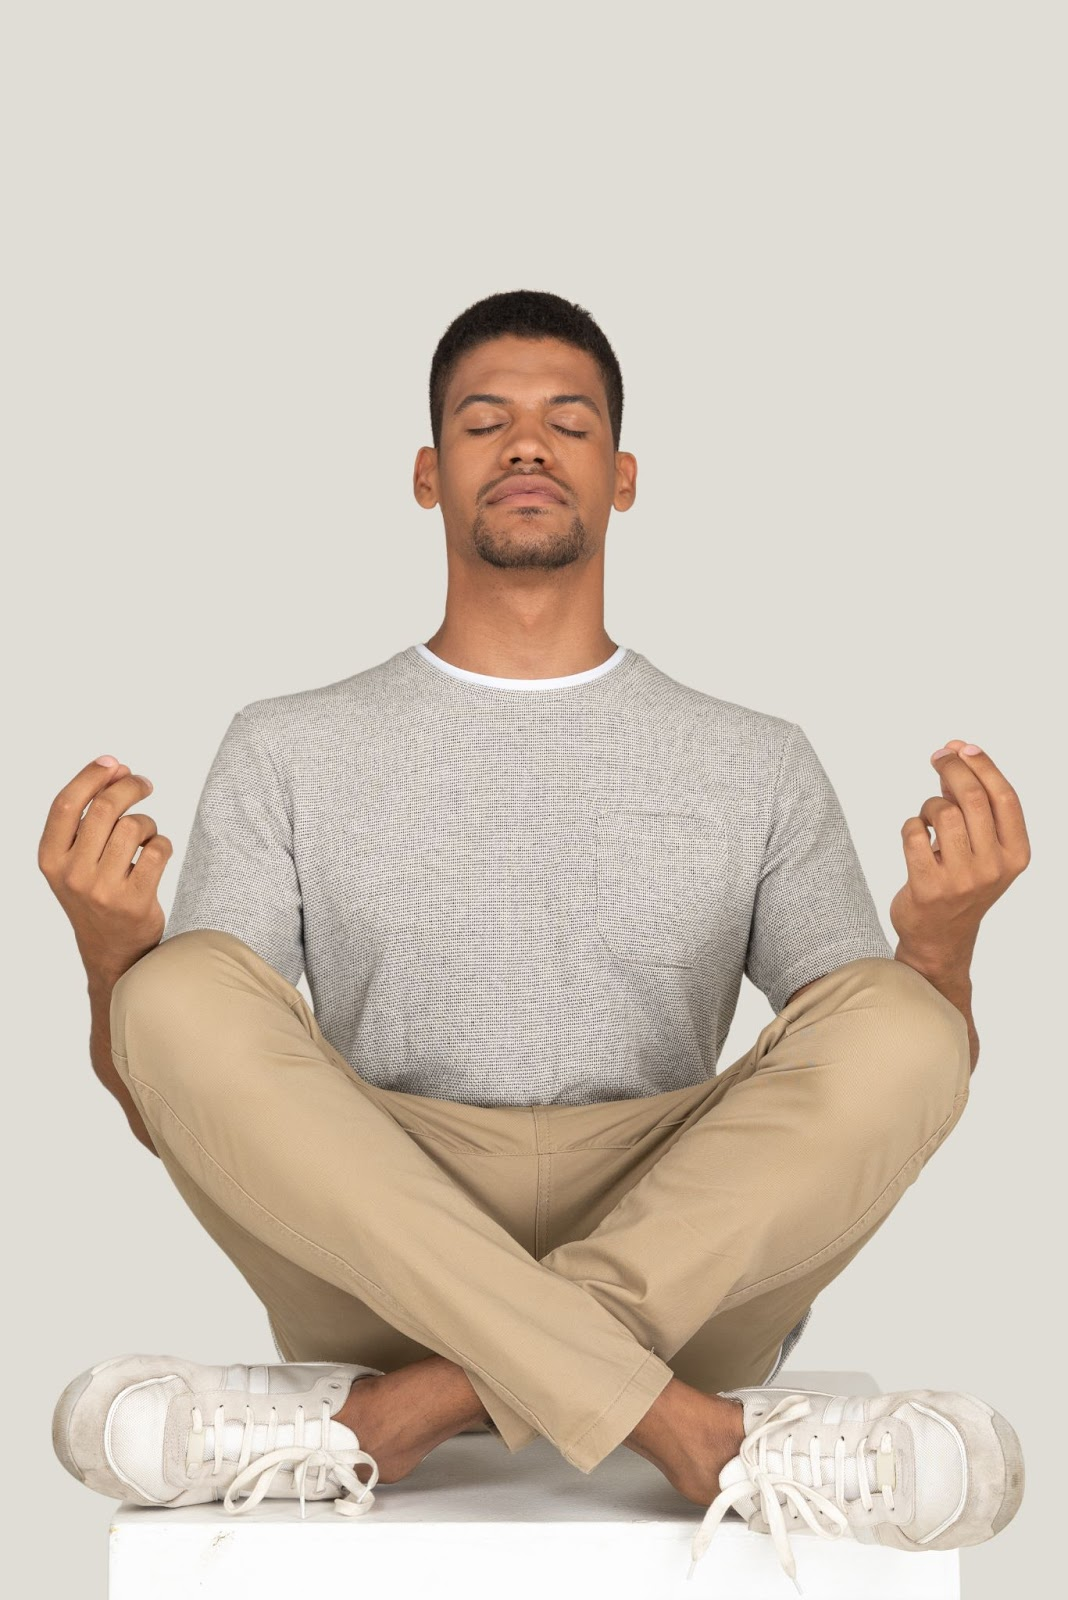 Get calm: enjoy the graphic set for the Yoga And Meditation day. I need to meditate. Please, don't push me